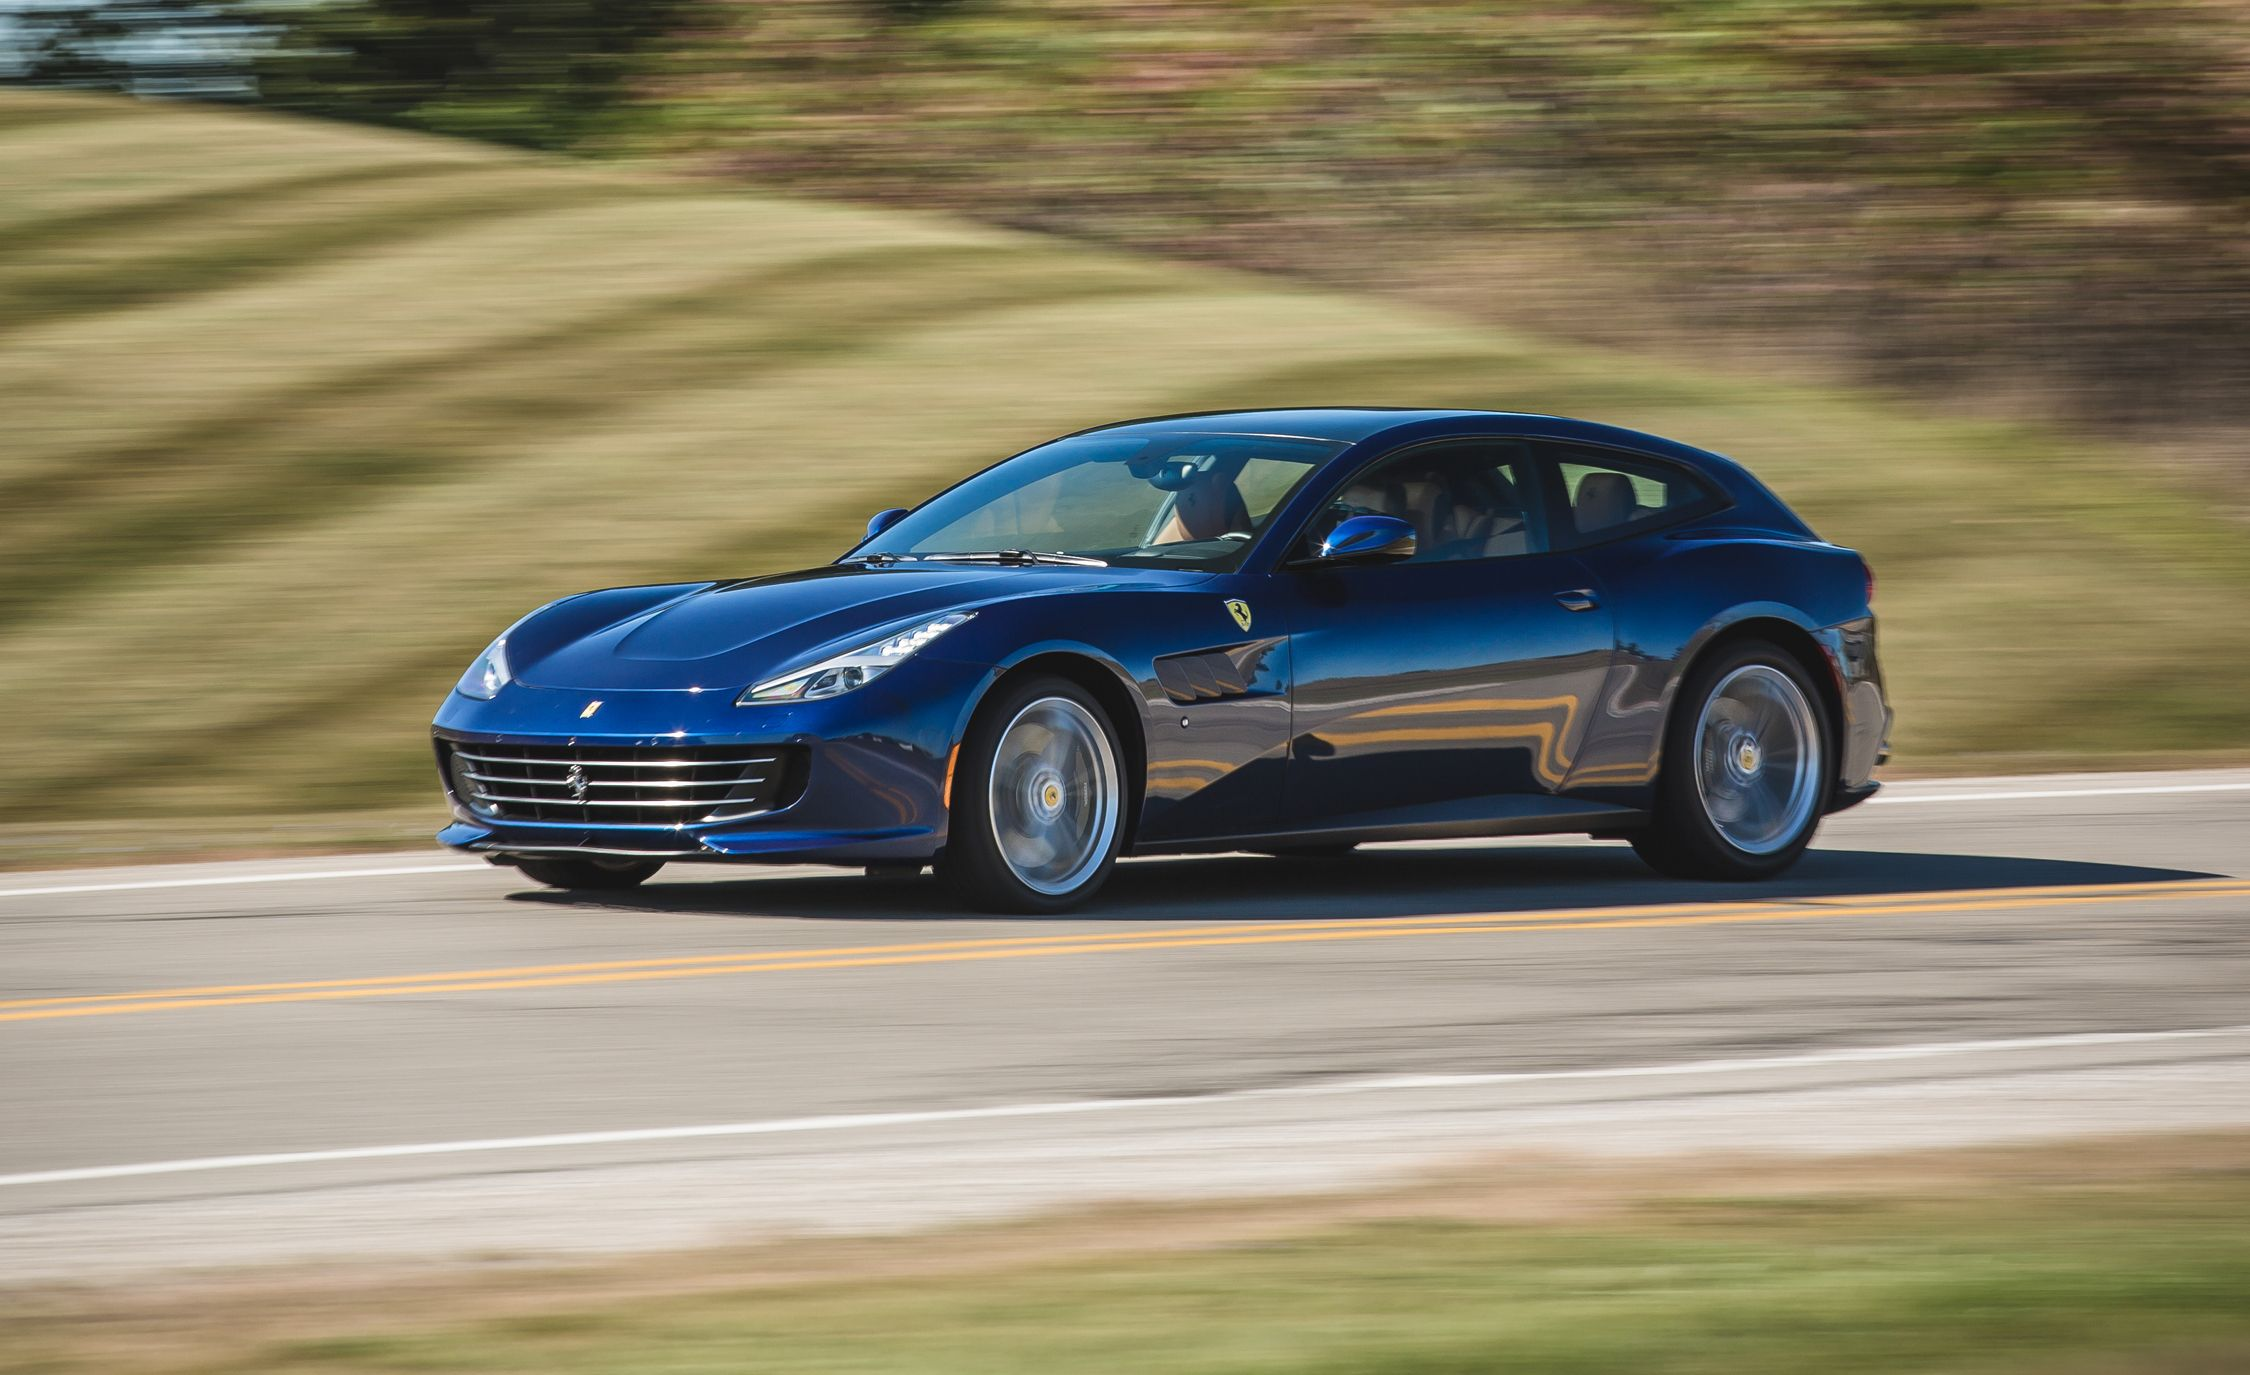 2017 Ferrari Gtc4lusso Face With A Volvo Booty Review Car And Driver